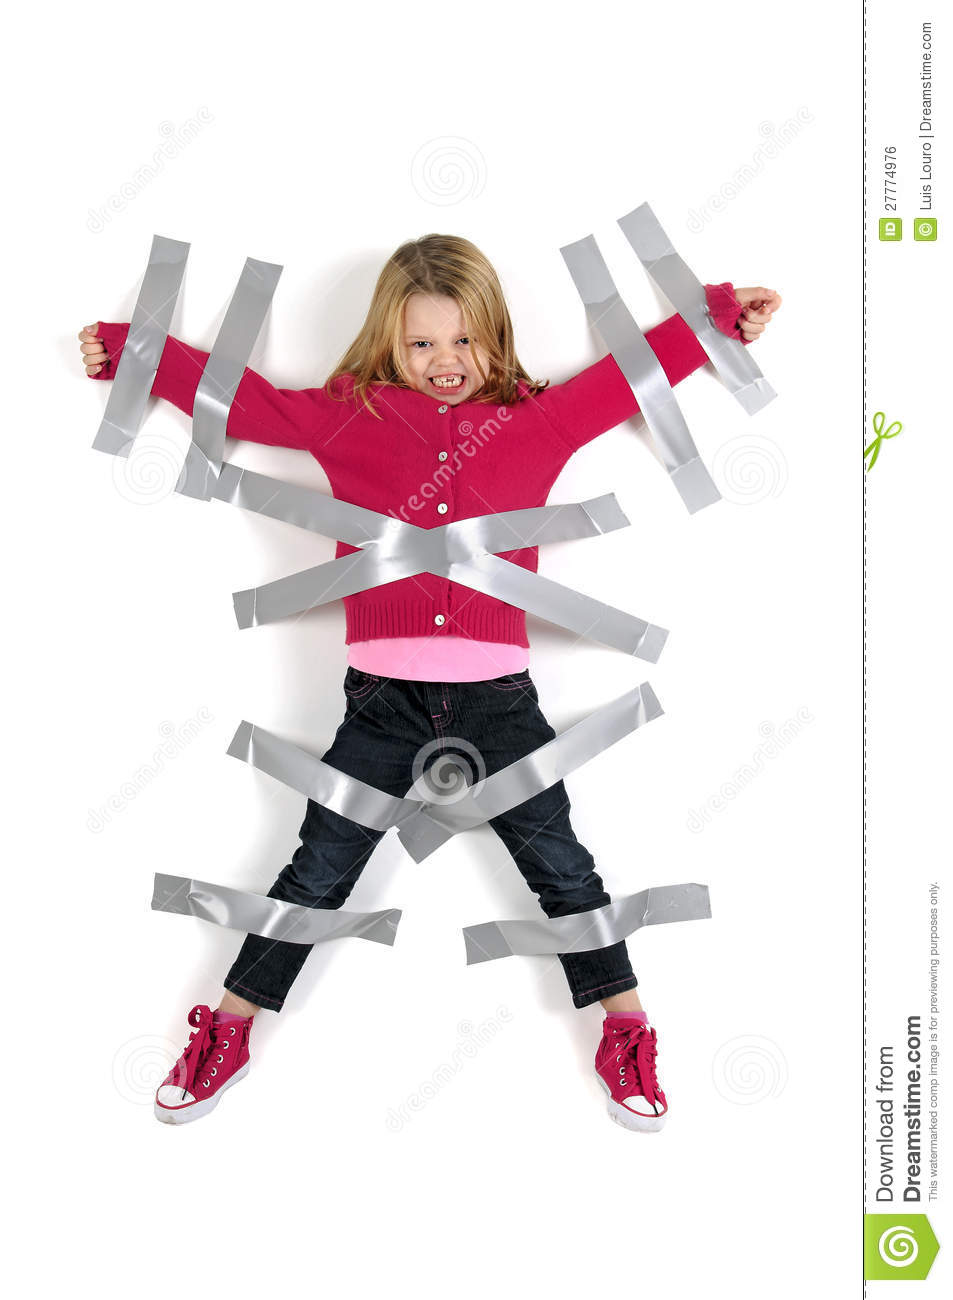 Taped up girl hops around house - 2 2